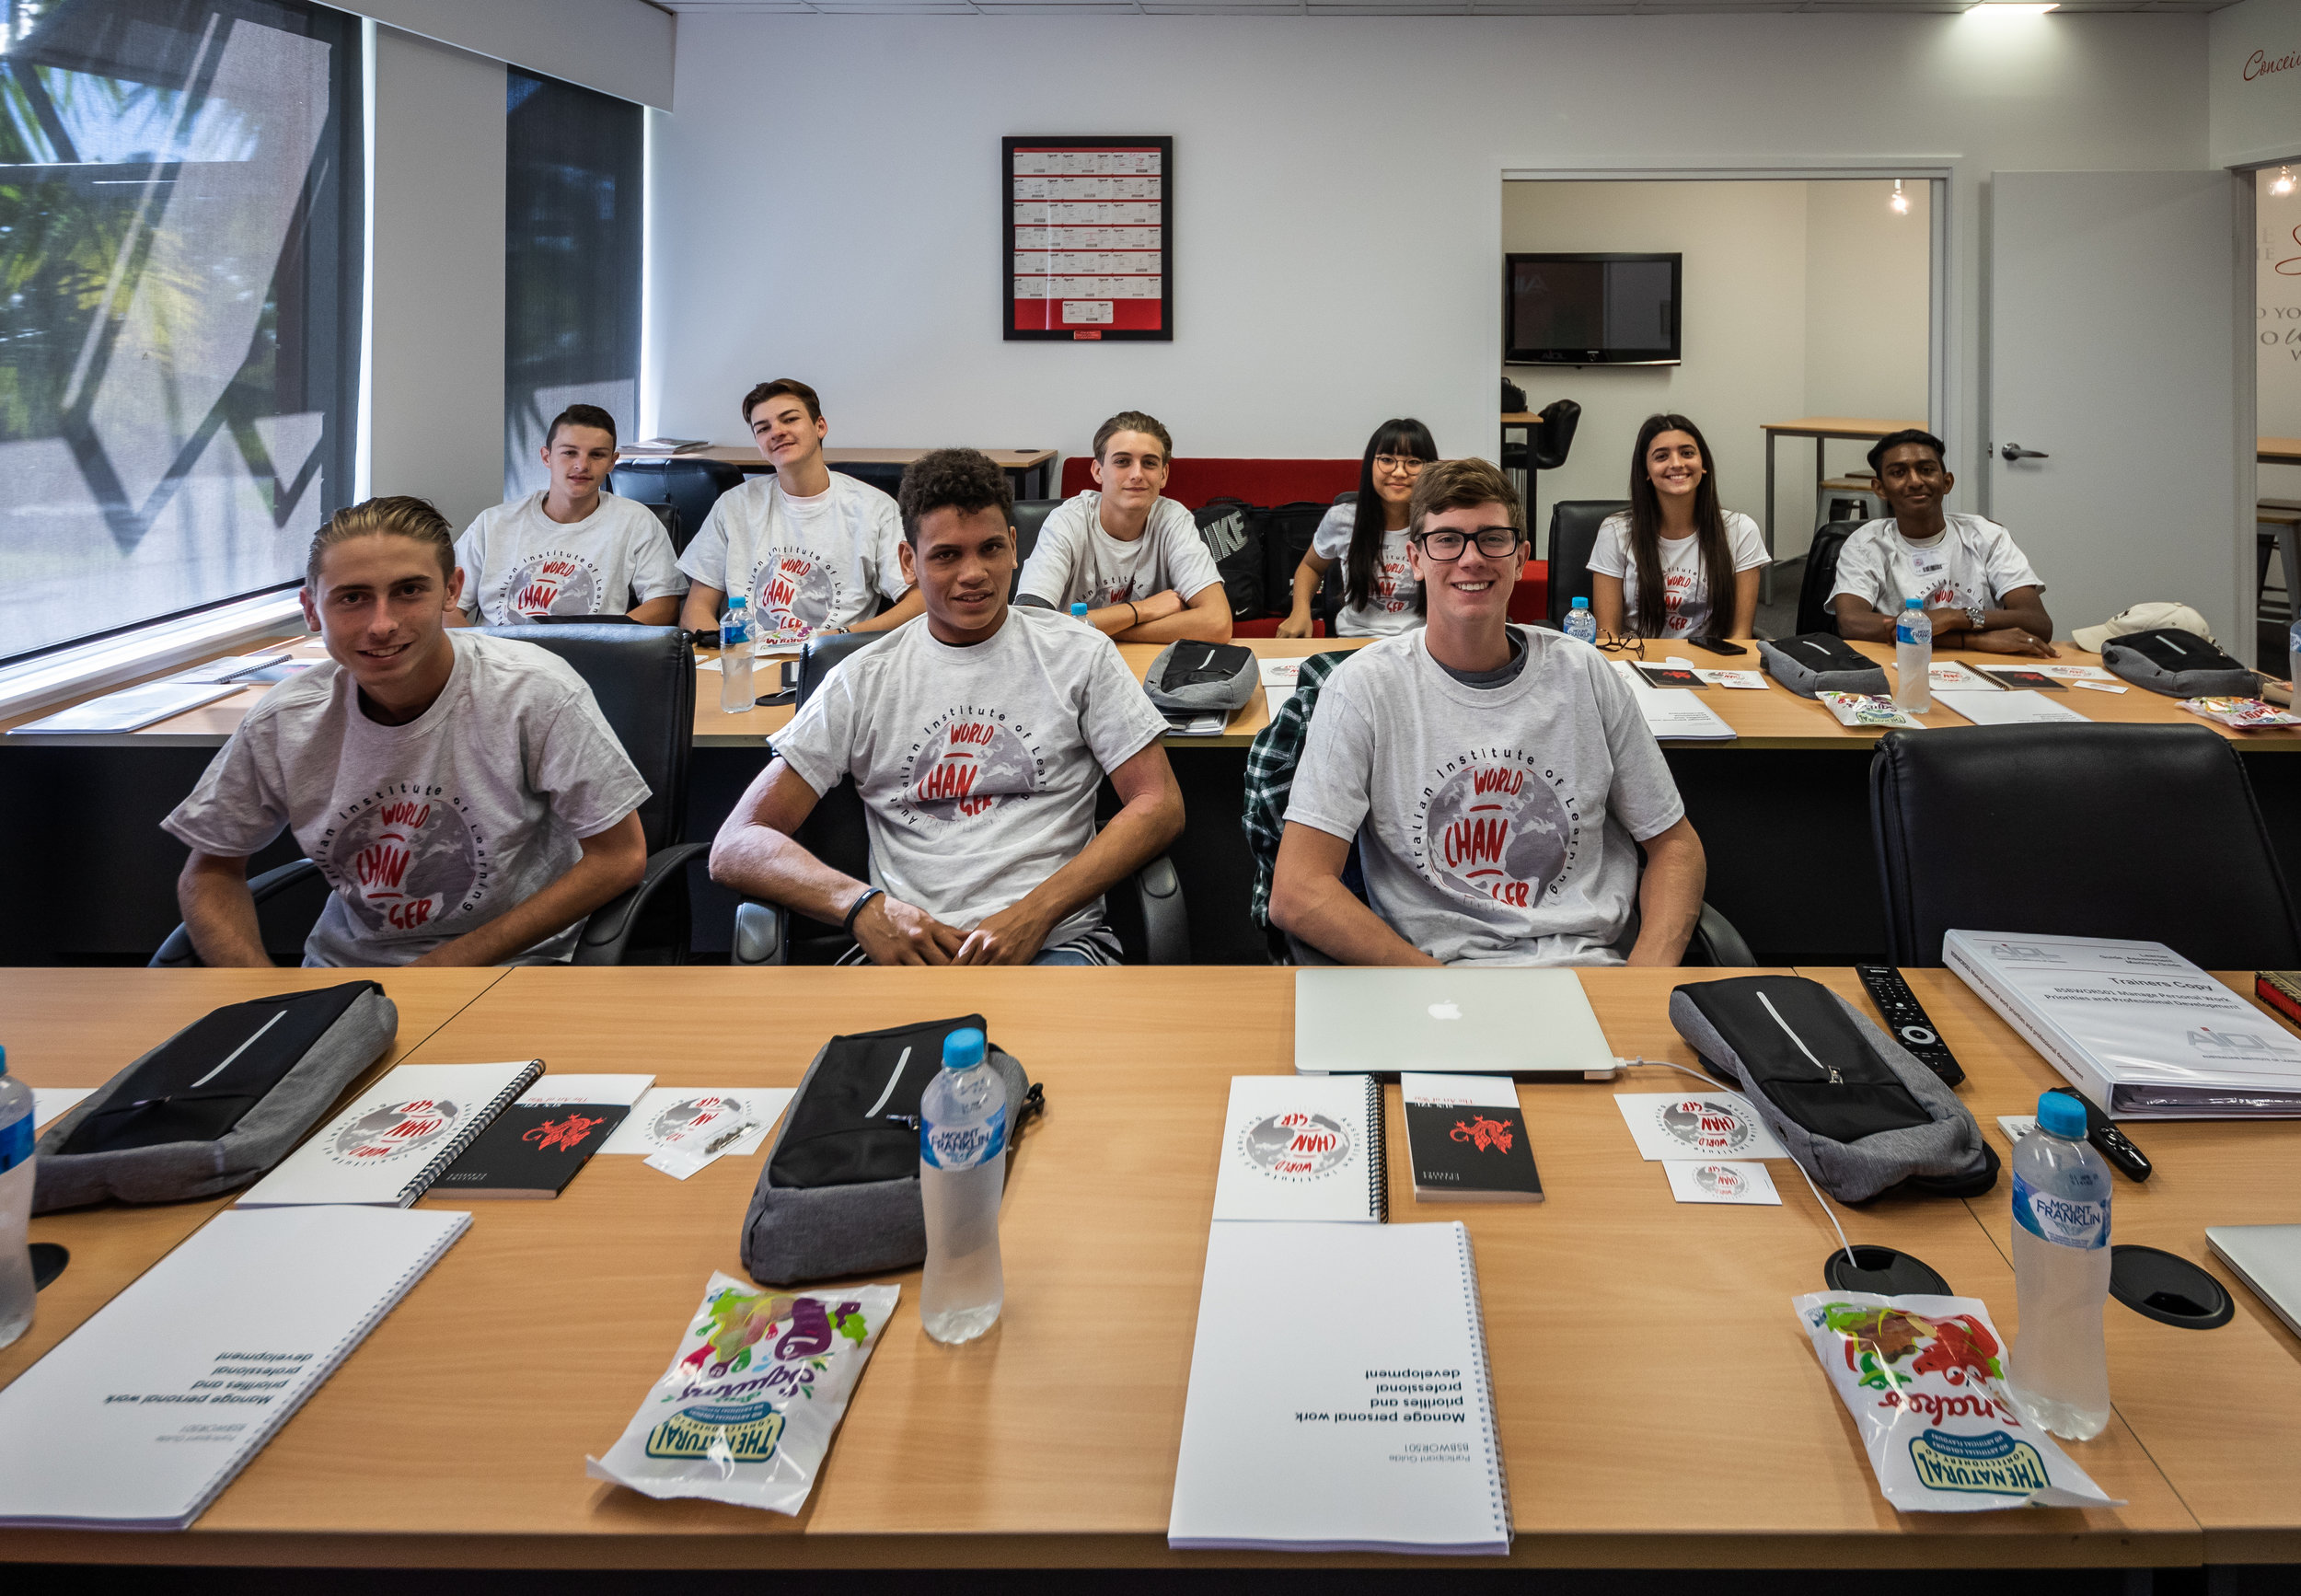 ENTREPRENEURIAL PROGRAM DESIGNED FOR YEAR 11 AND YEAR 12 STUDENTS